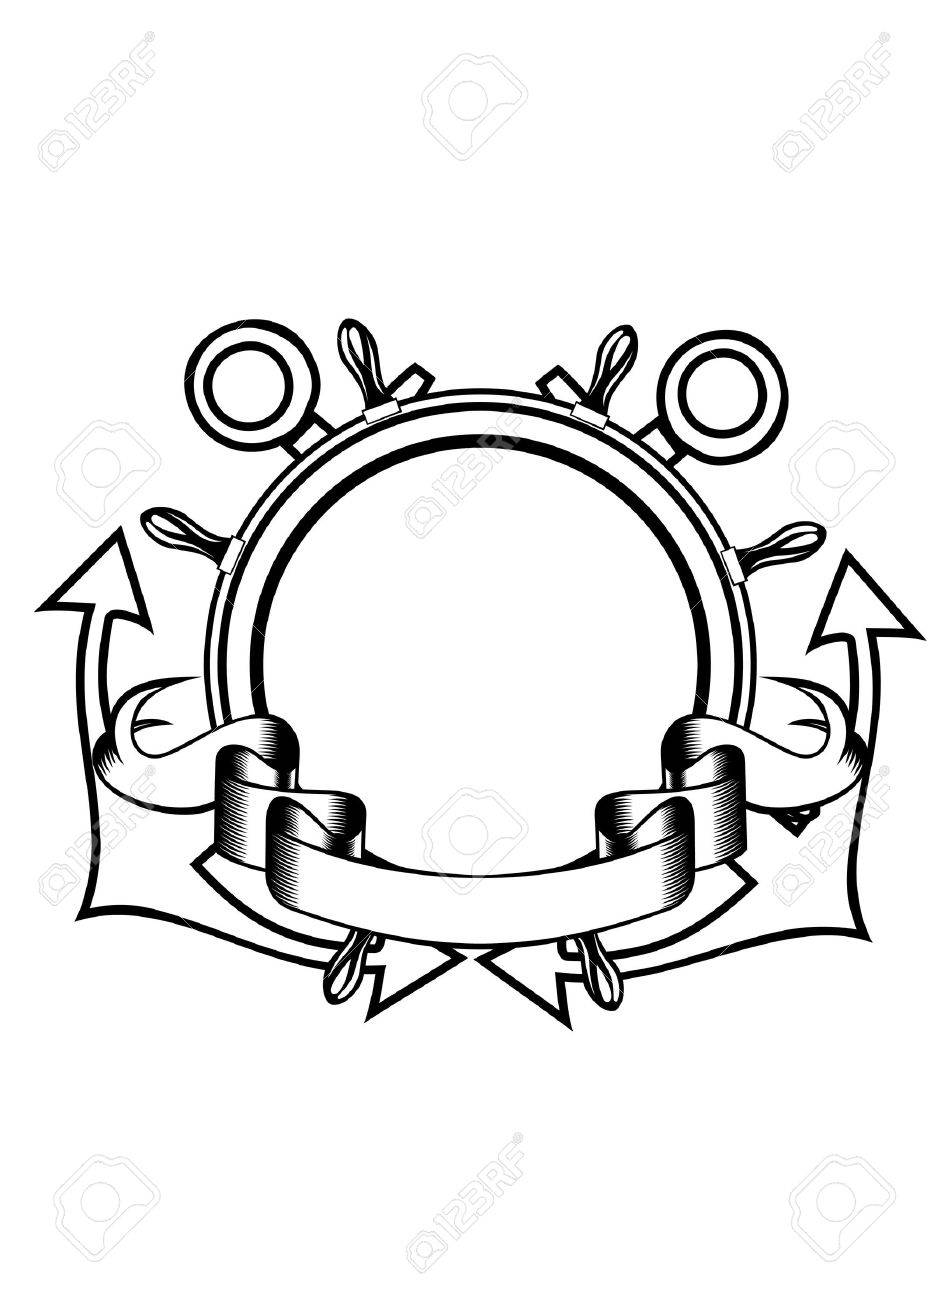 Vector illustration crossed anchors and steering wheel Stock Vector - 14485608